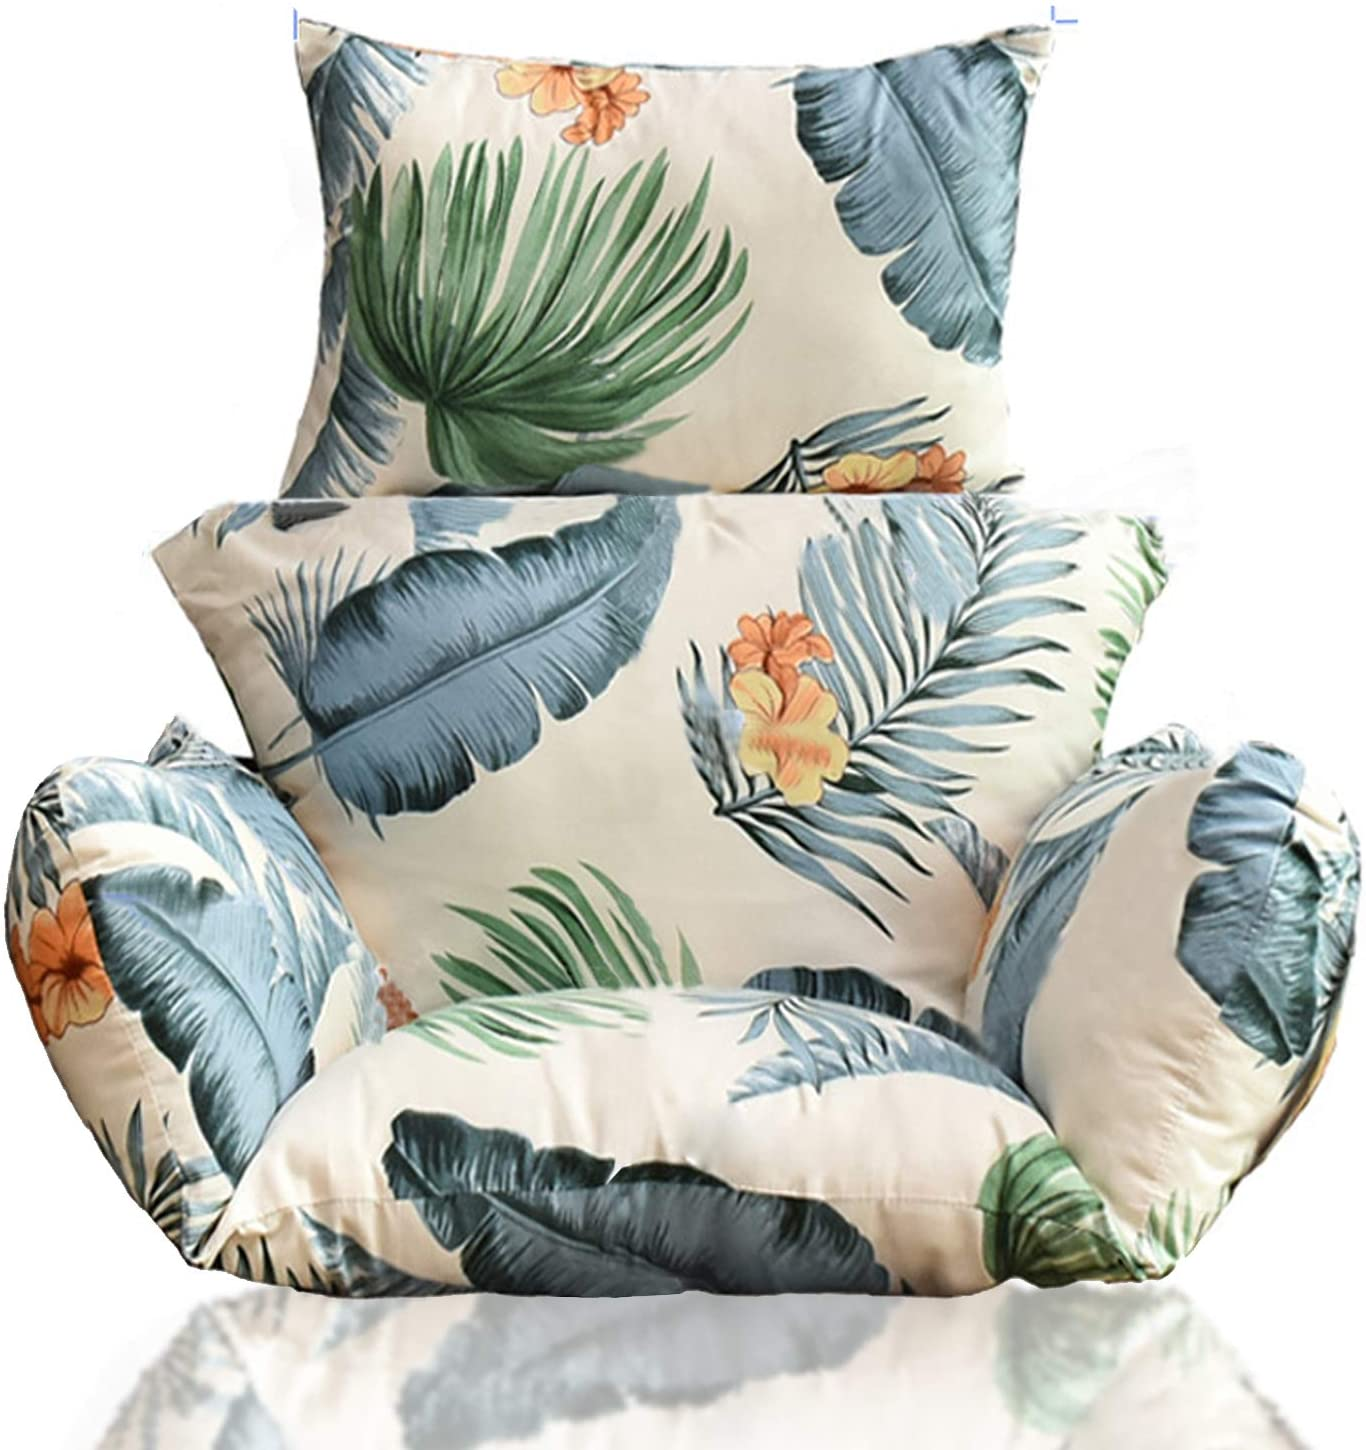 Hanging Chair Cushion, Cushions for Hanging Egg Chair,Washable Swing Chair Cushion, Thicken Patio Hanging Egg Chair Pad, Garden Hanging Basket Chair Seat (Only Cushion)(Hawaiian Style)